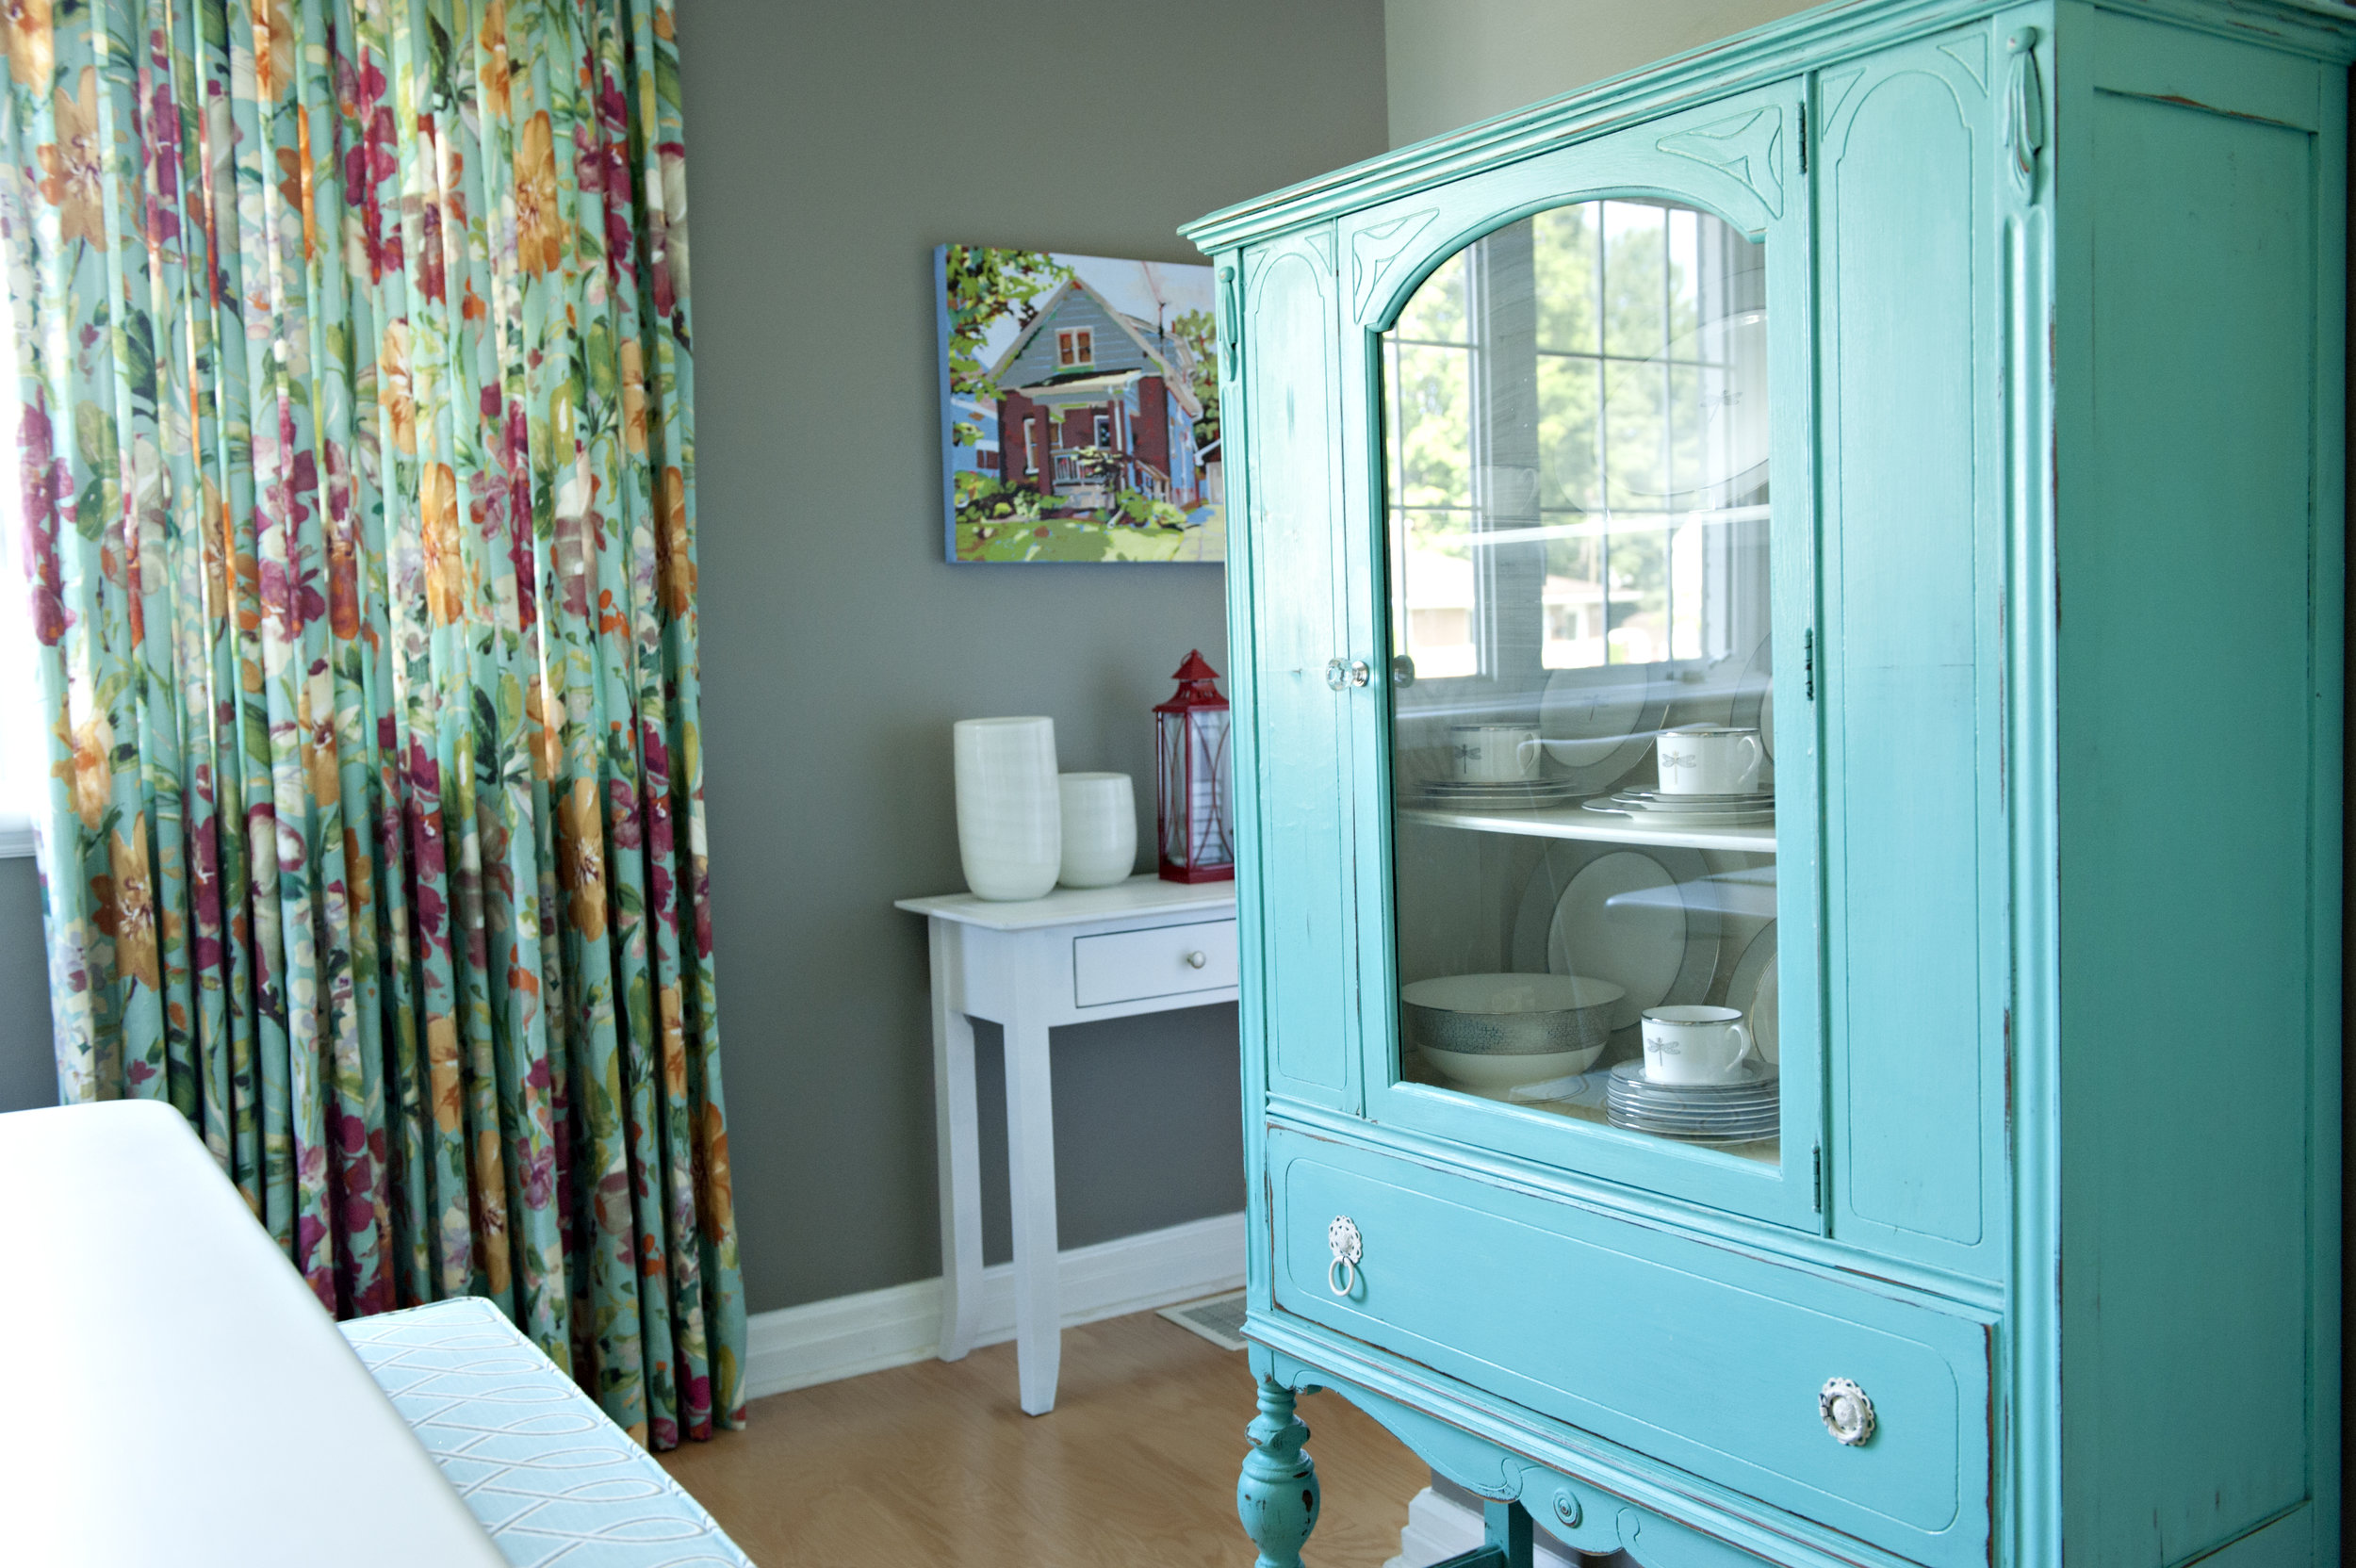 Candace-Plotz-Irving-Dining-Hutch-Blue-Turquoise-Colourful